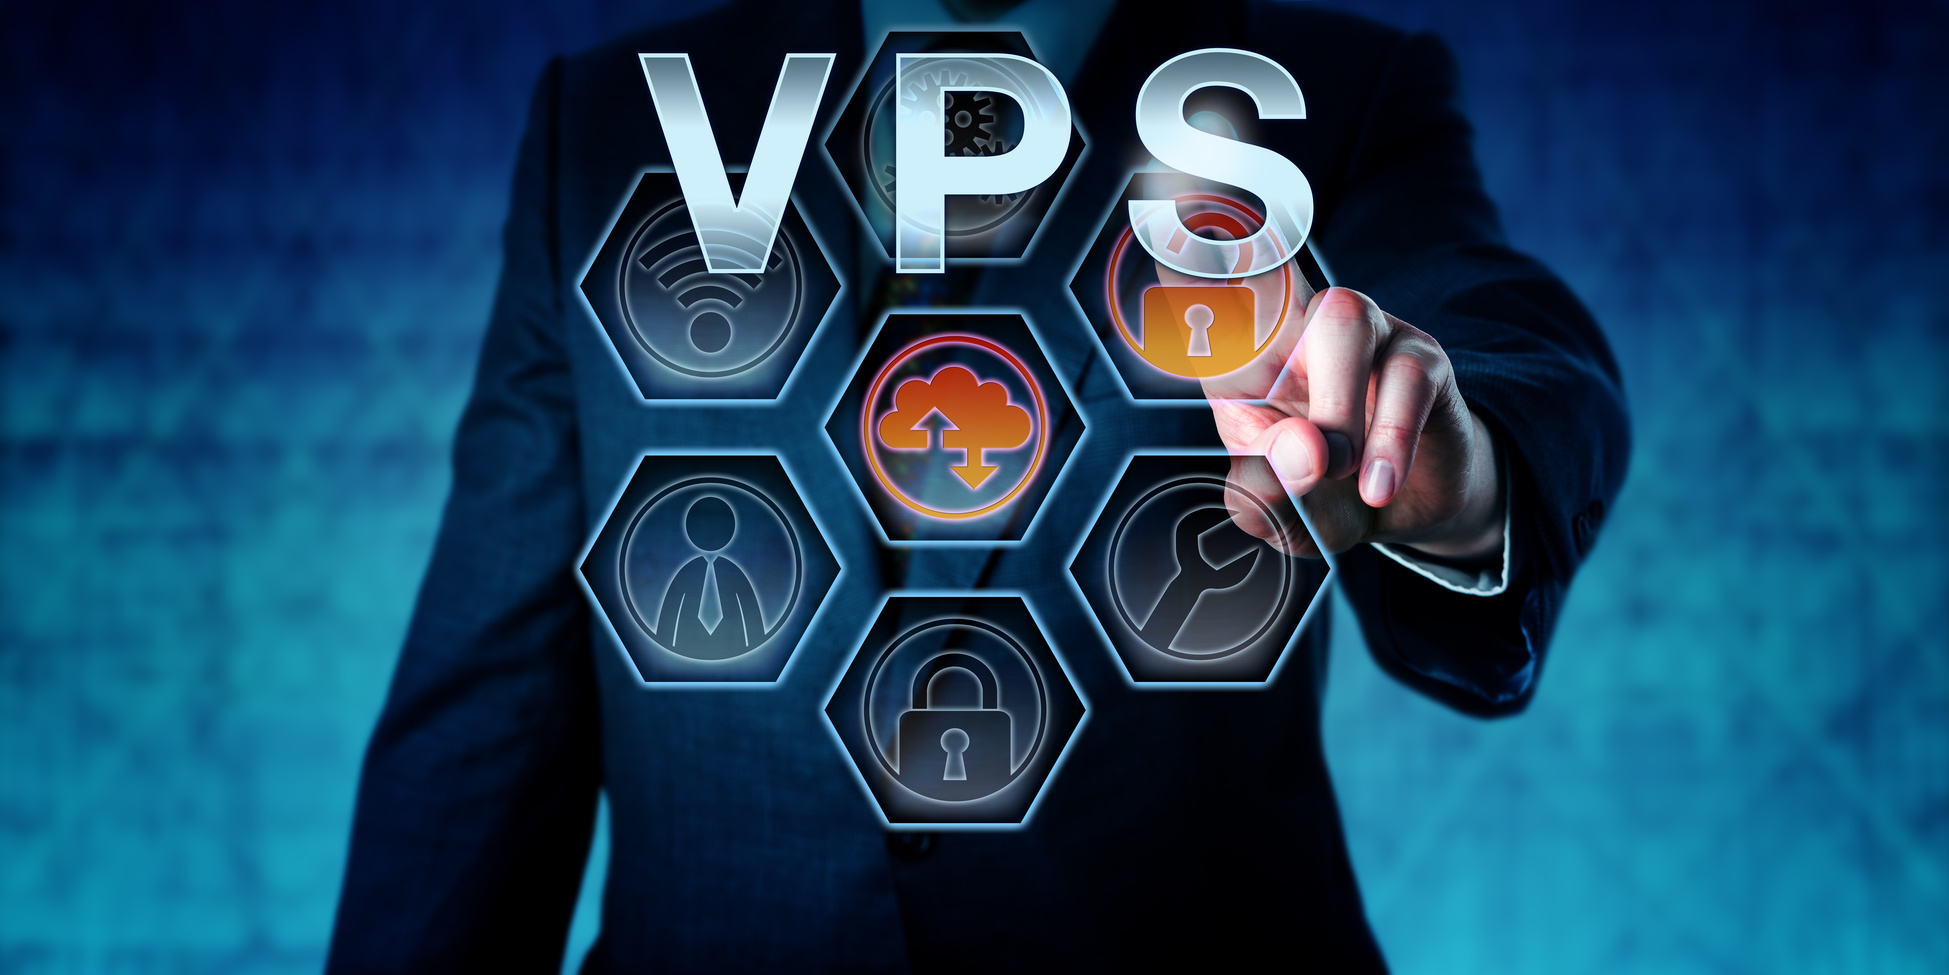 Cheap reliable forex vps hosting